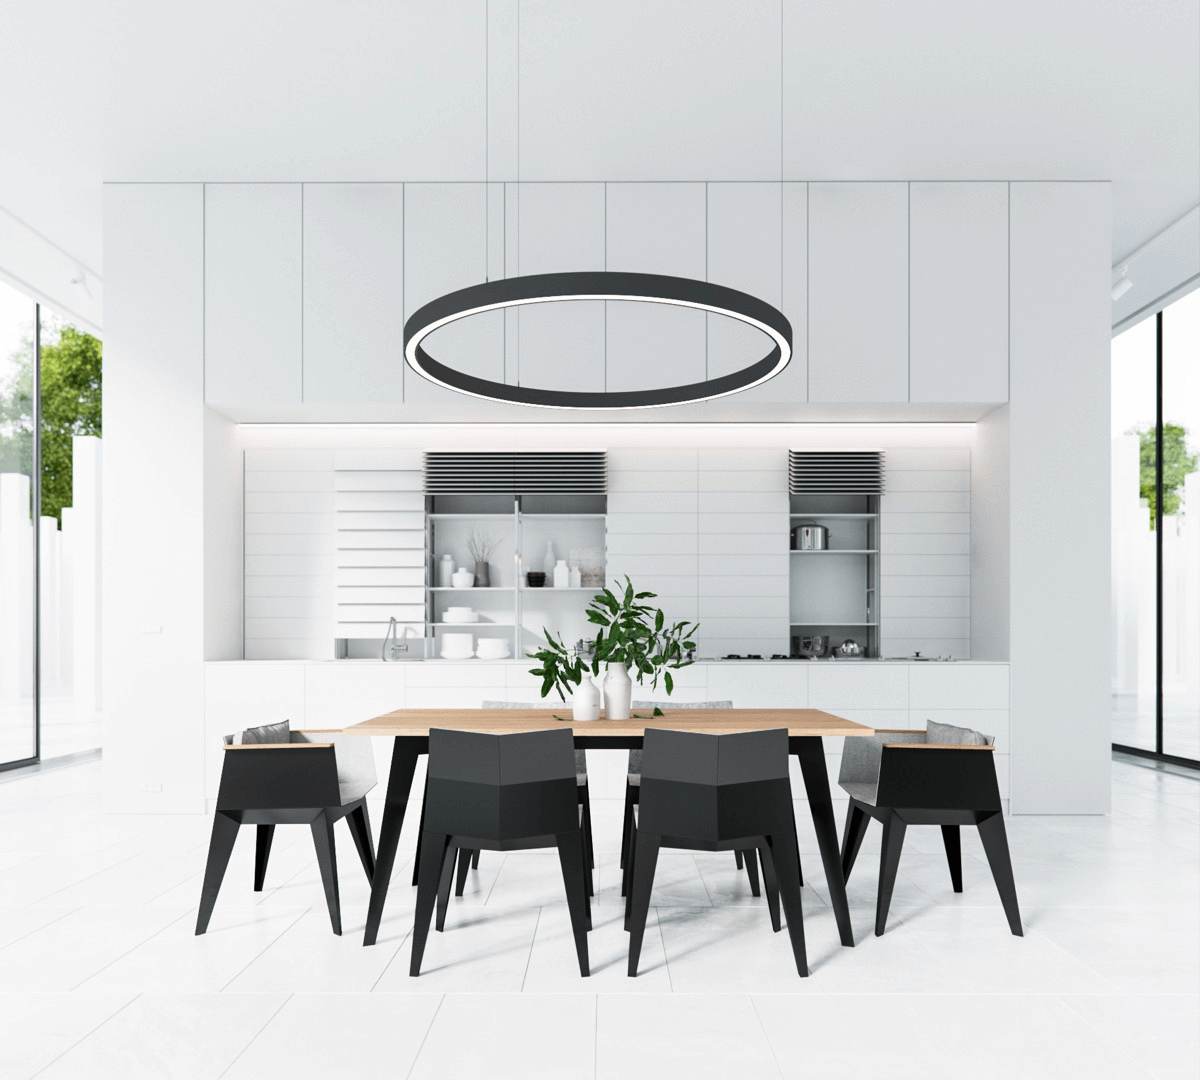 Monochrome-themed Kitchen and Dining Room